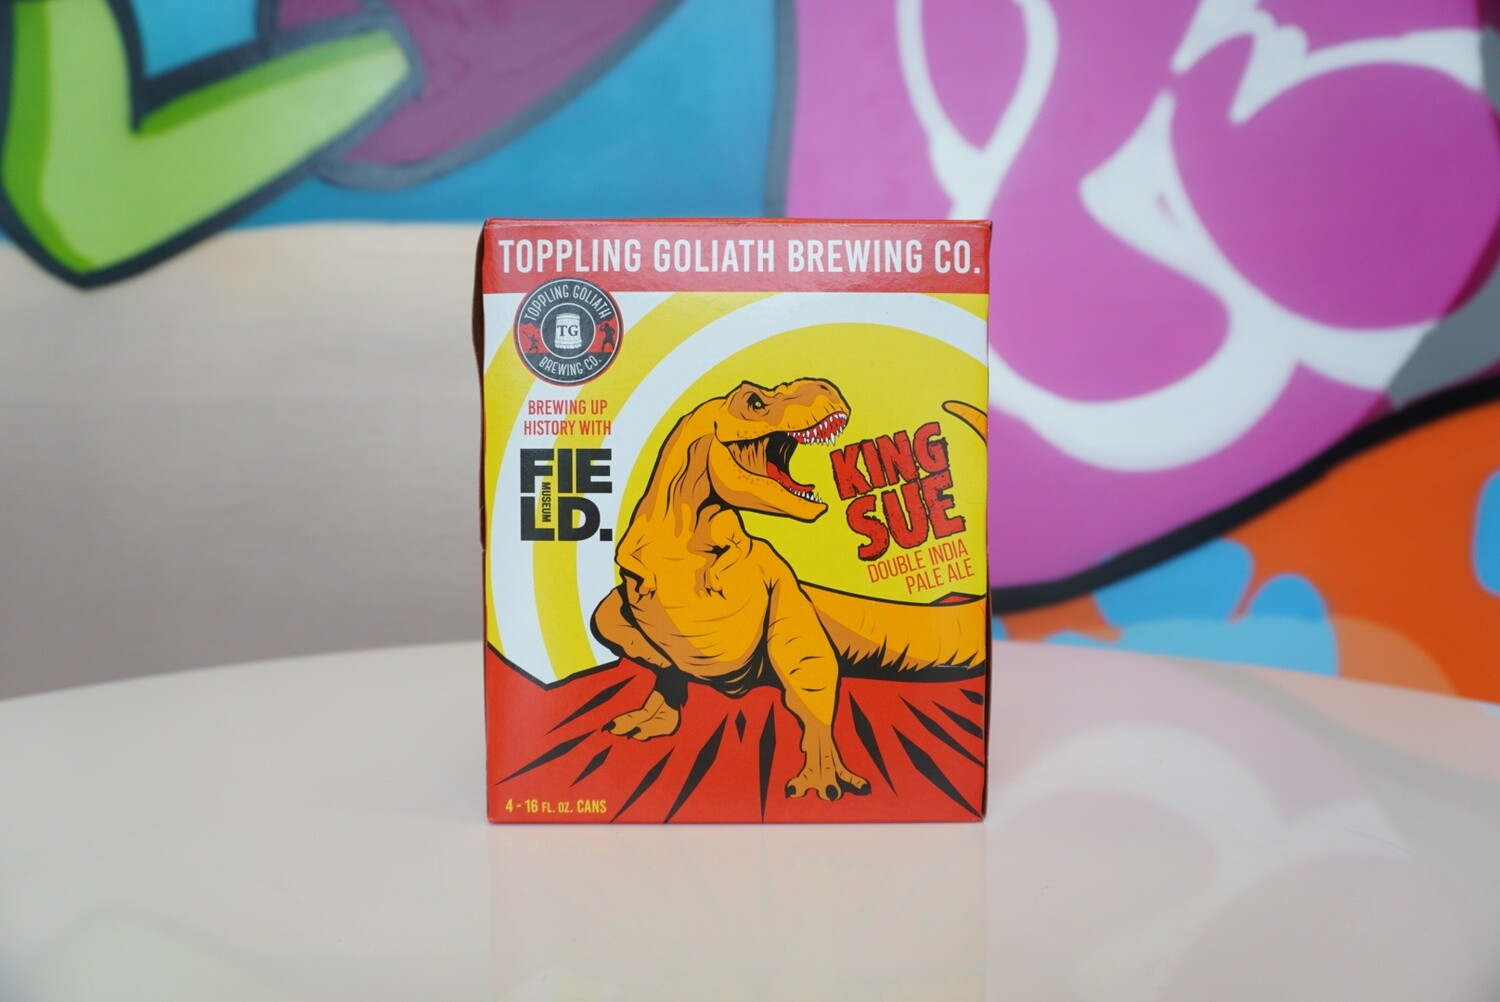 Toppling Goliath - King Sue - Double IPA - 7.8% ABV - 4-Pack